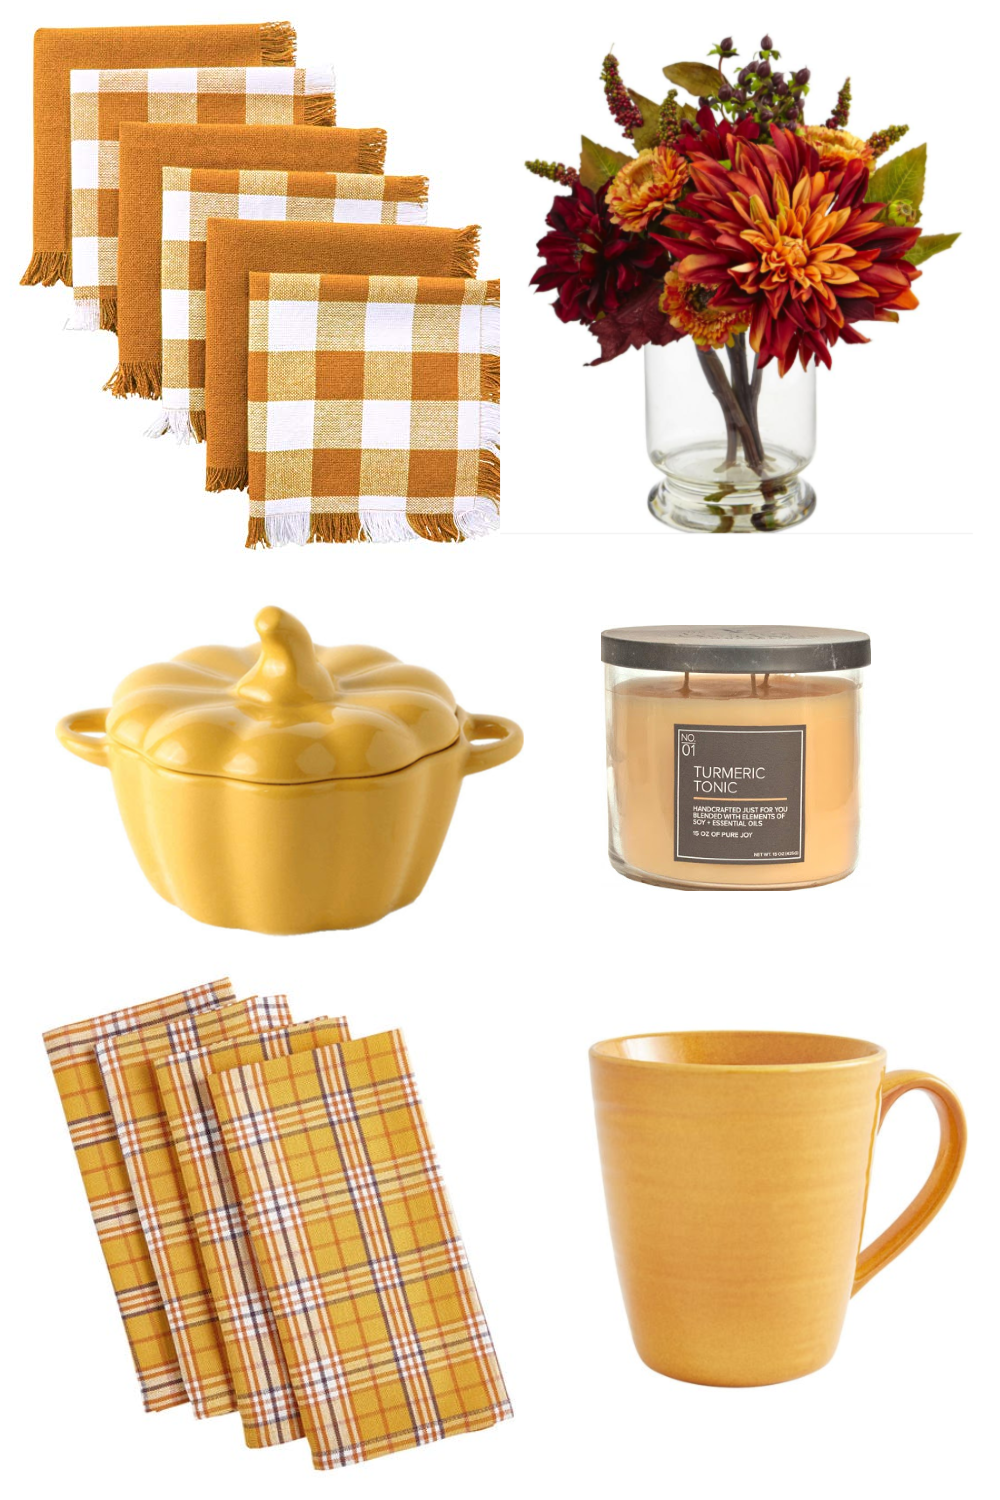 Turmeric Fall Tableware